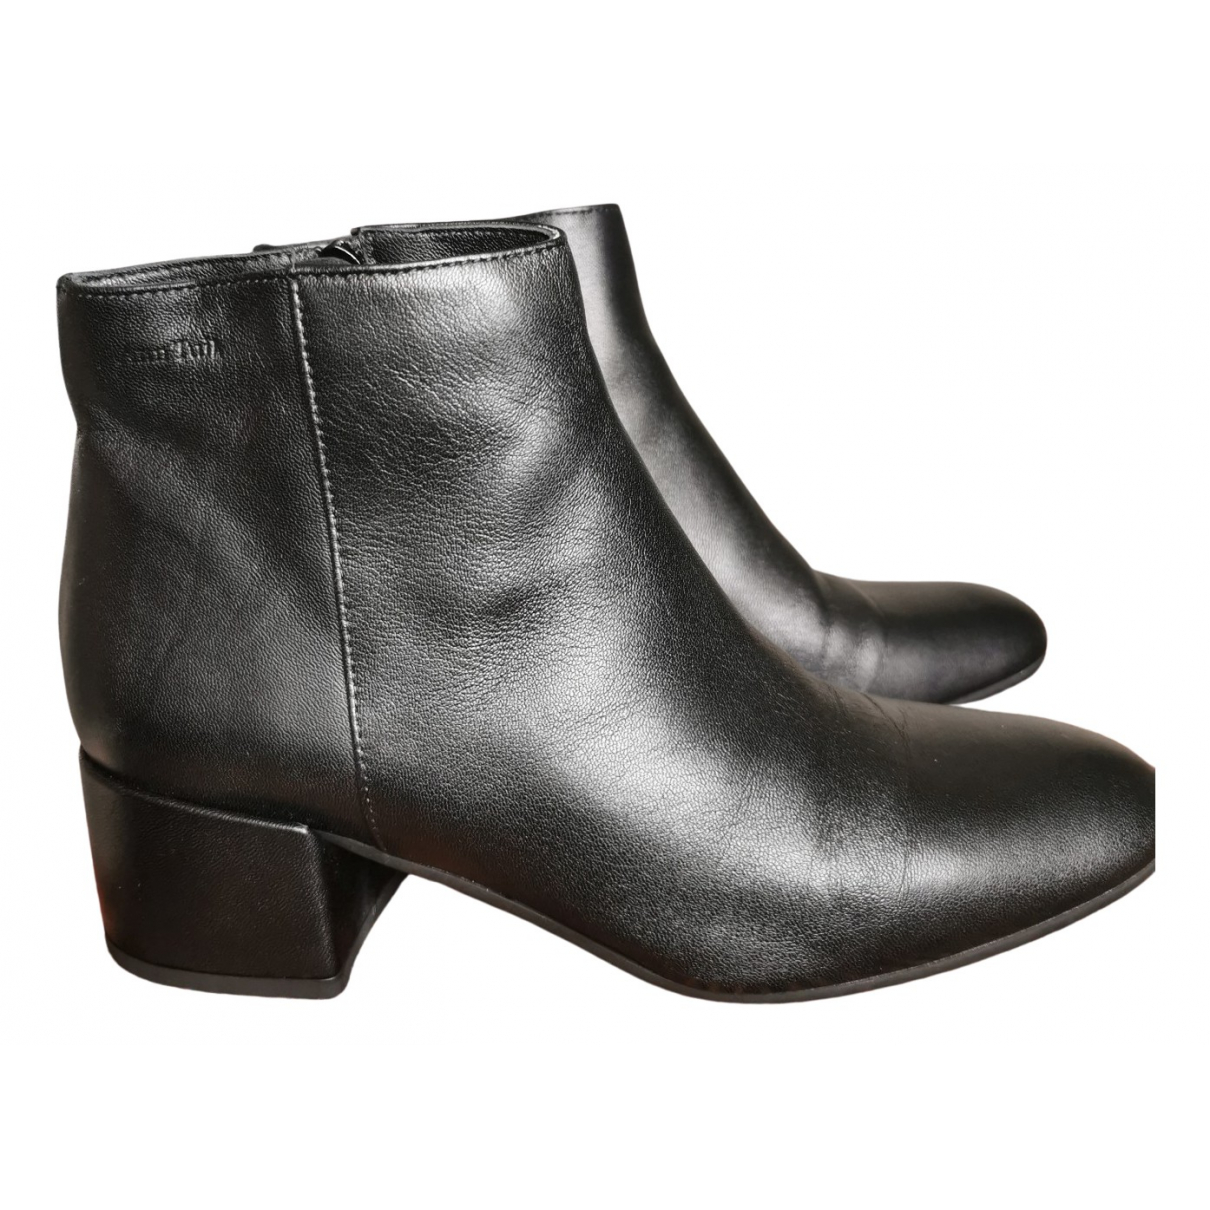 Ann Tuil N Black Leather Ankle boots for Women 37 EU